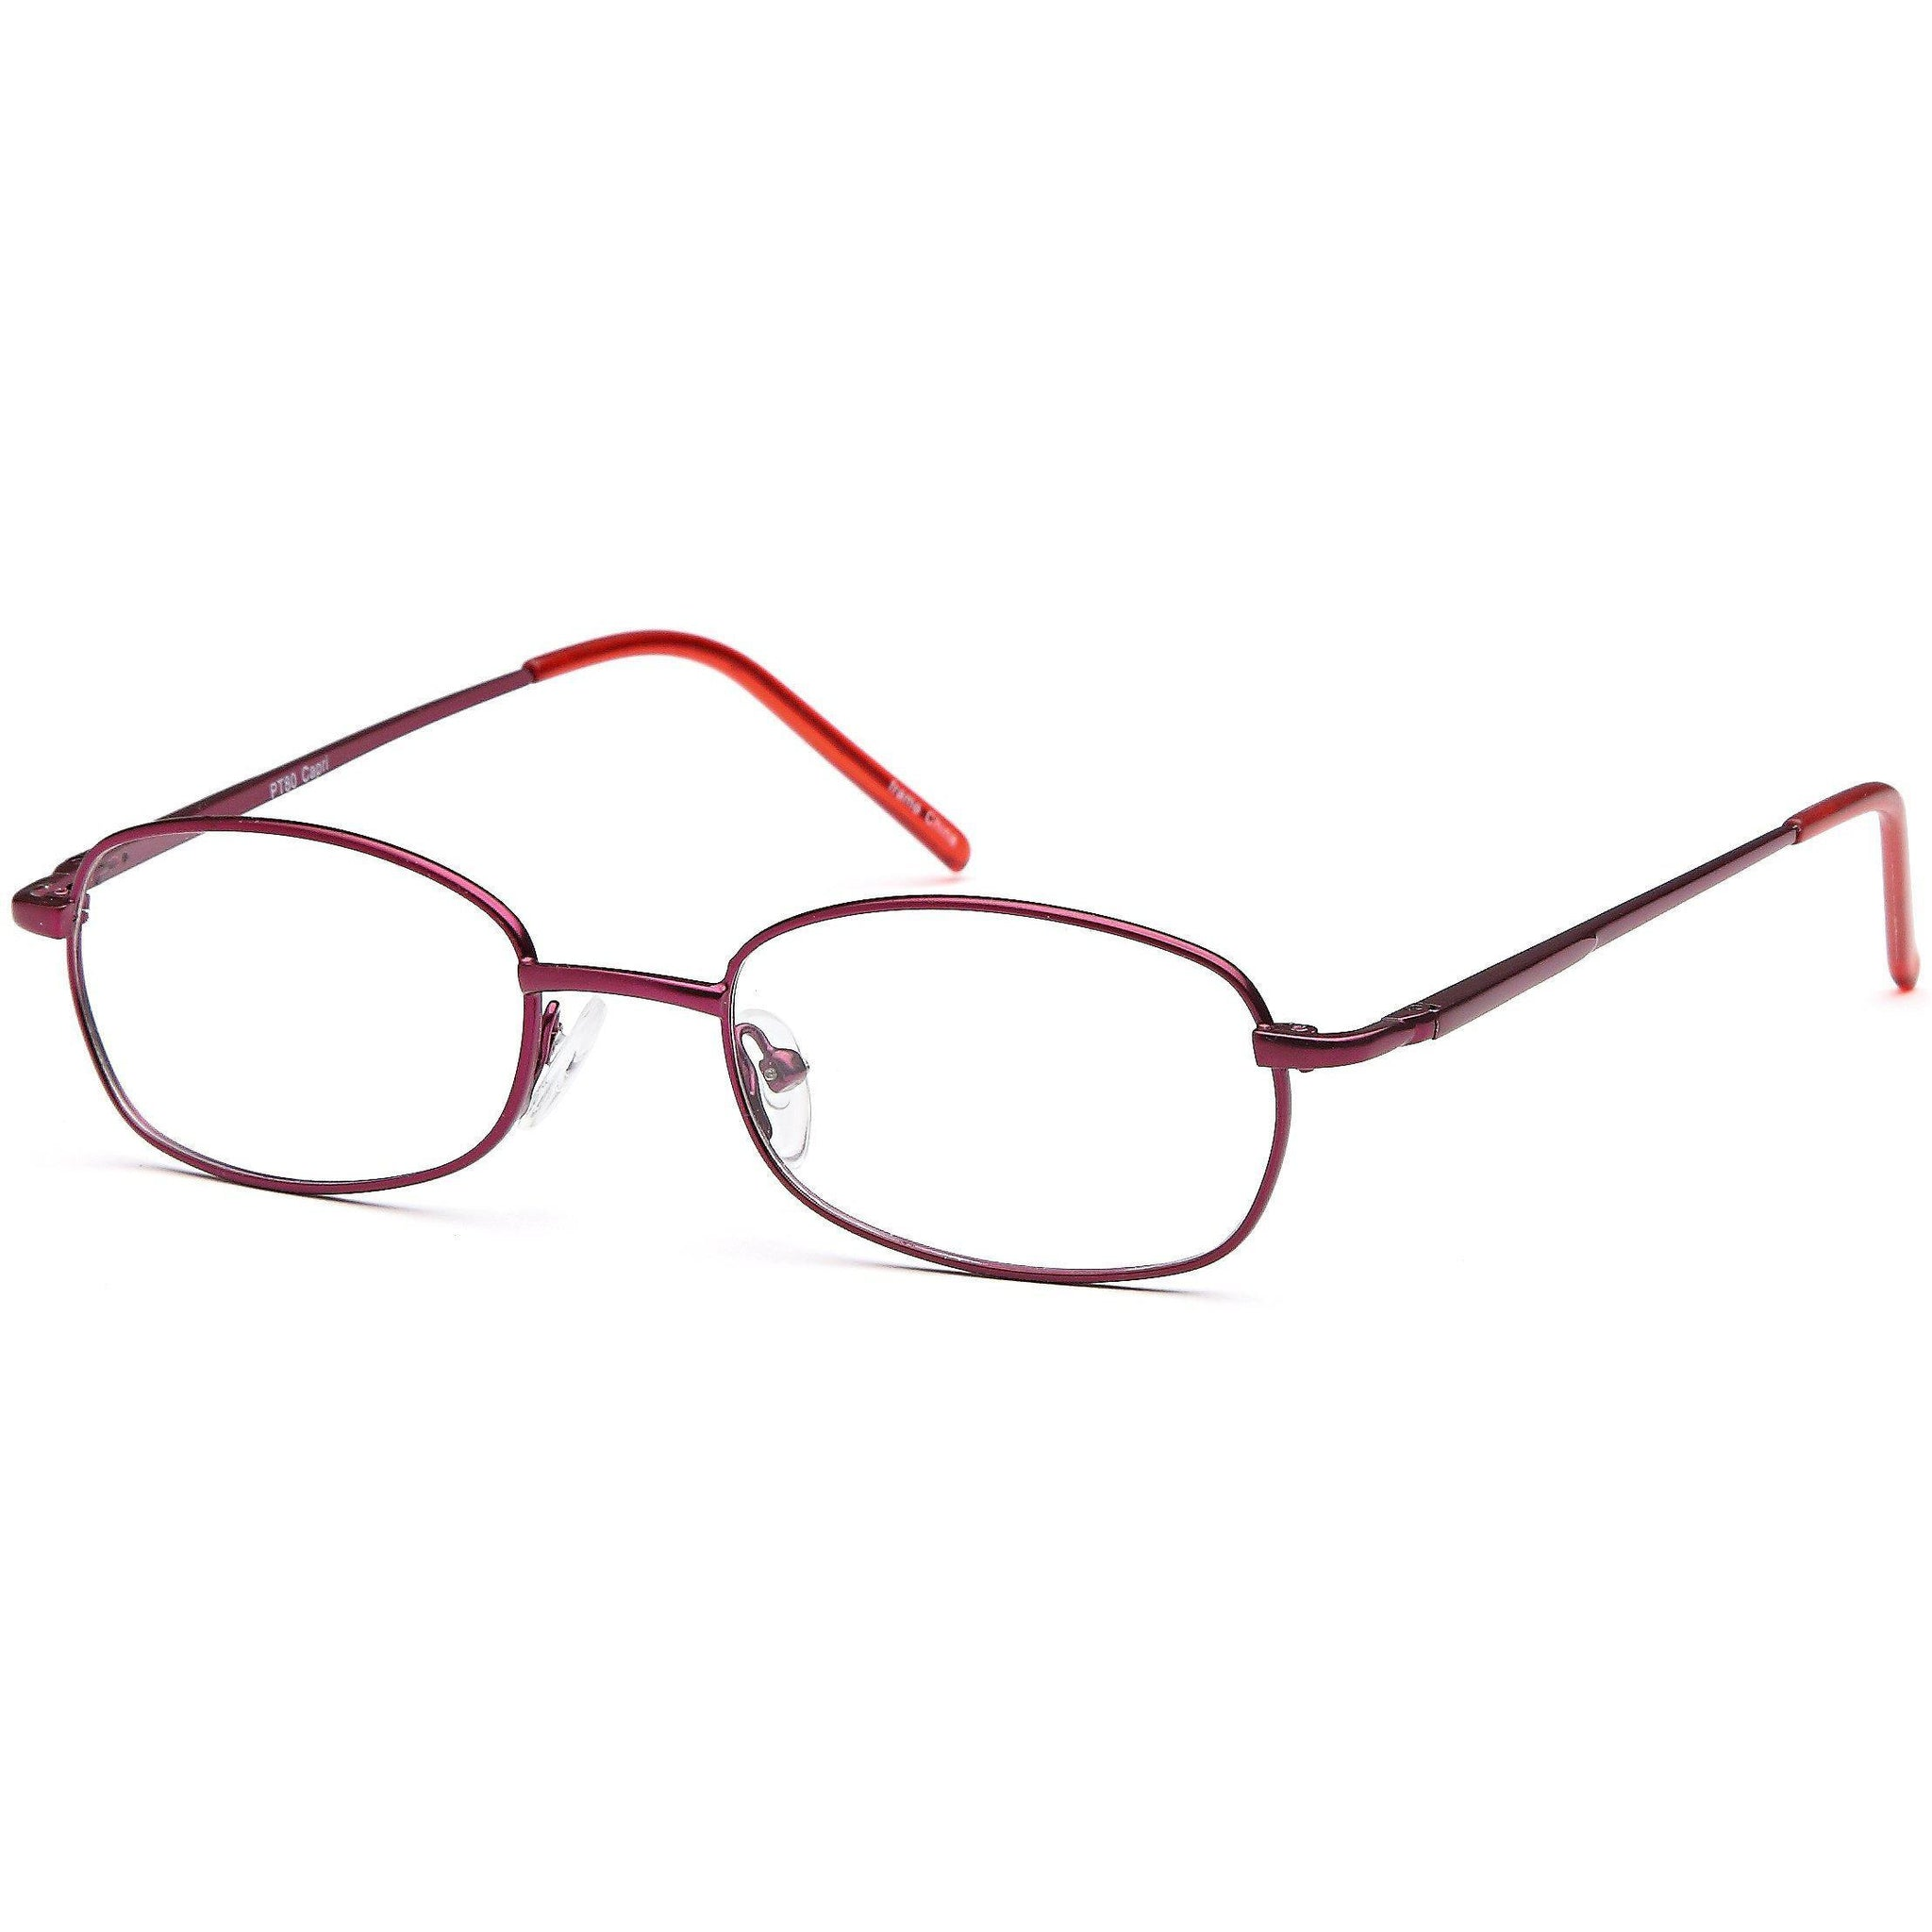 Appletree Prescription Glasses PT 80 Eyeglasses Frame